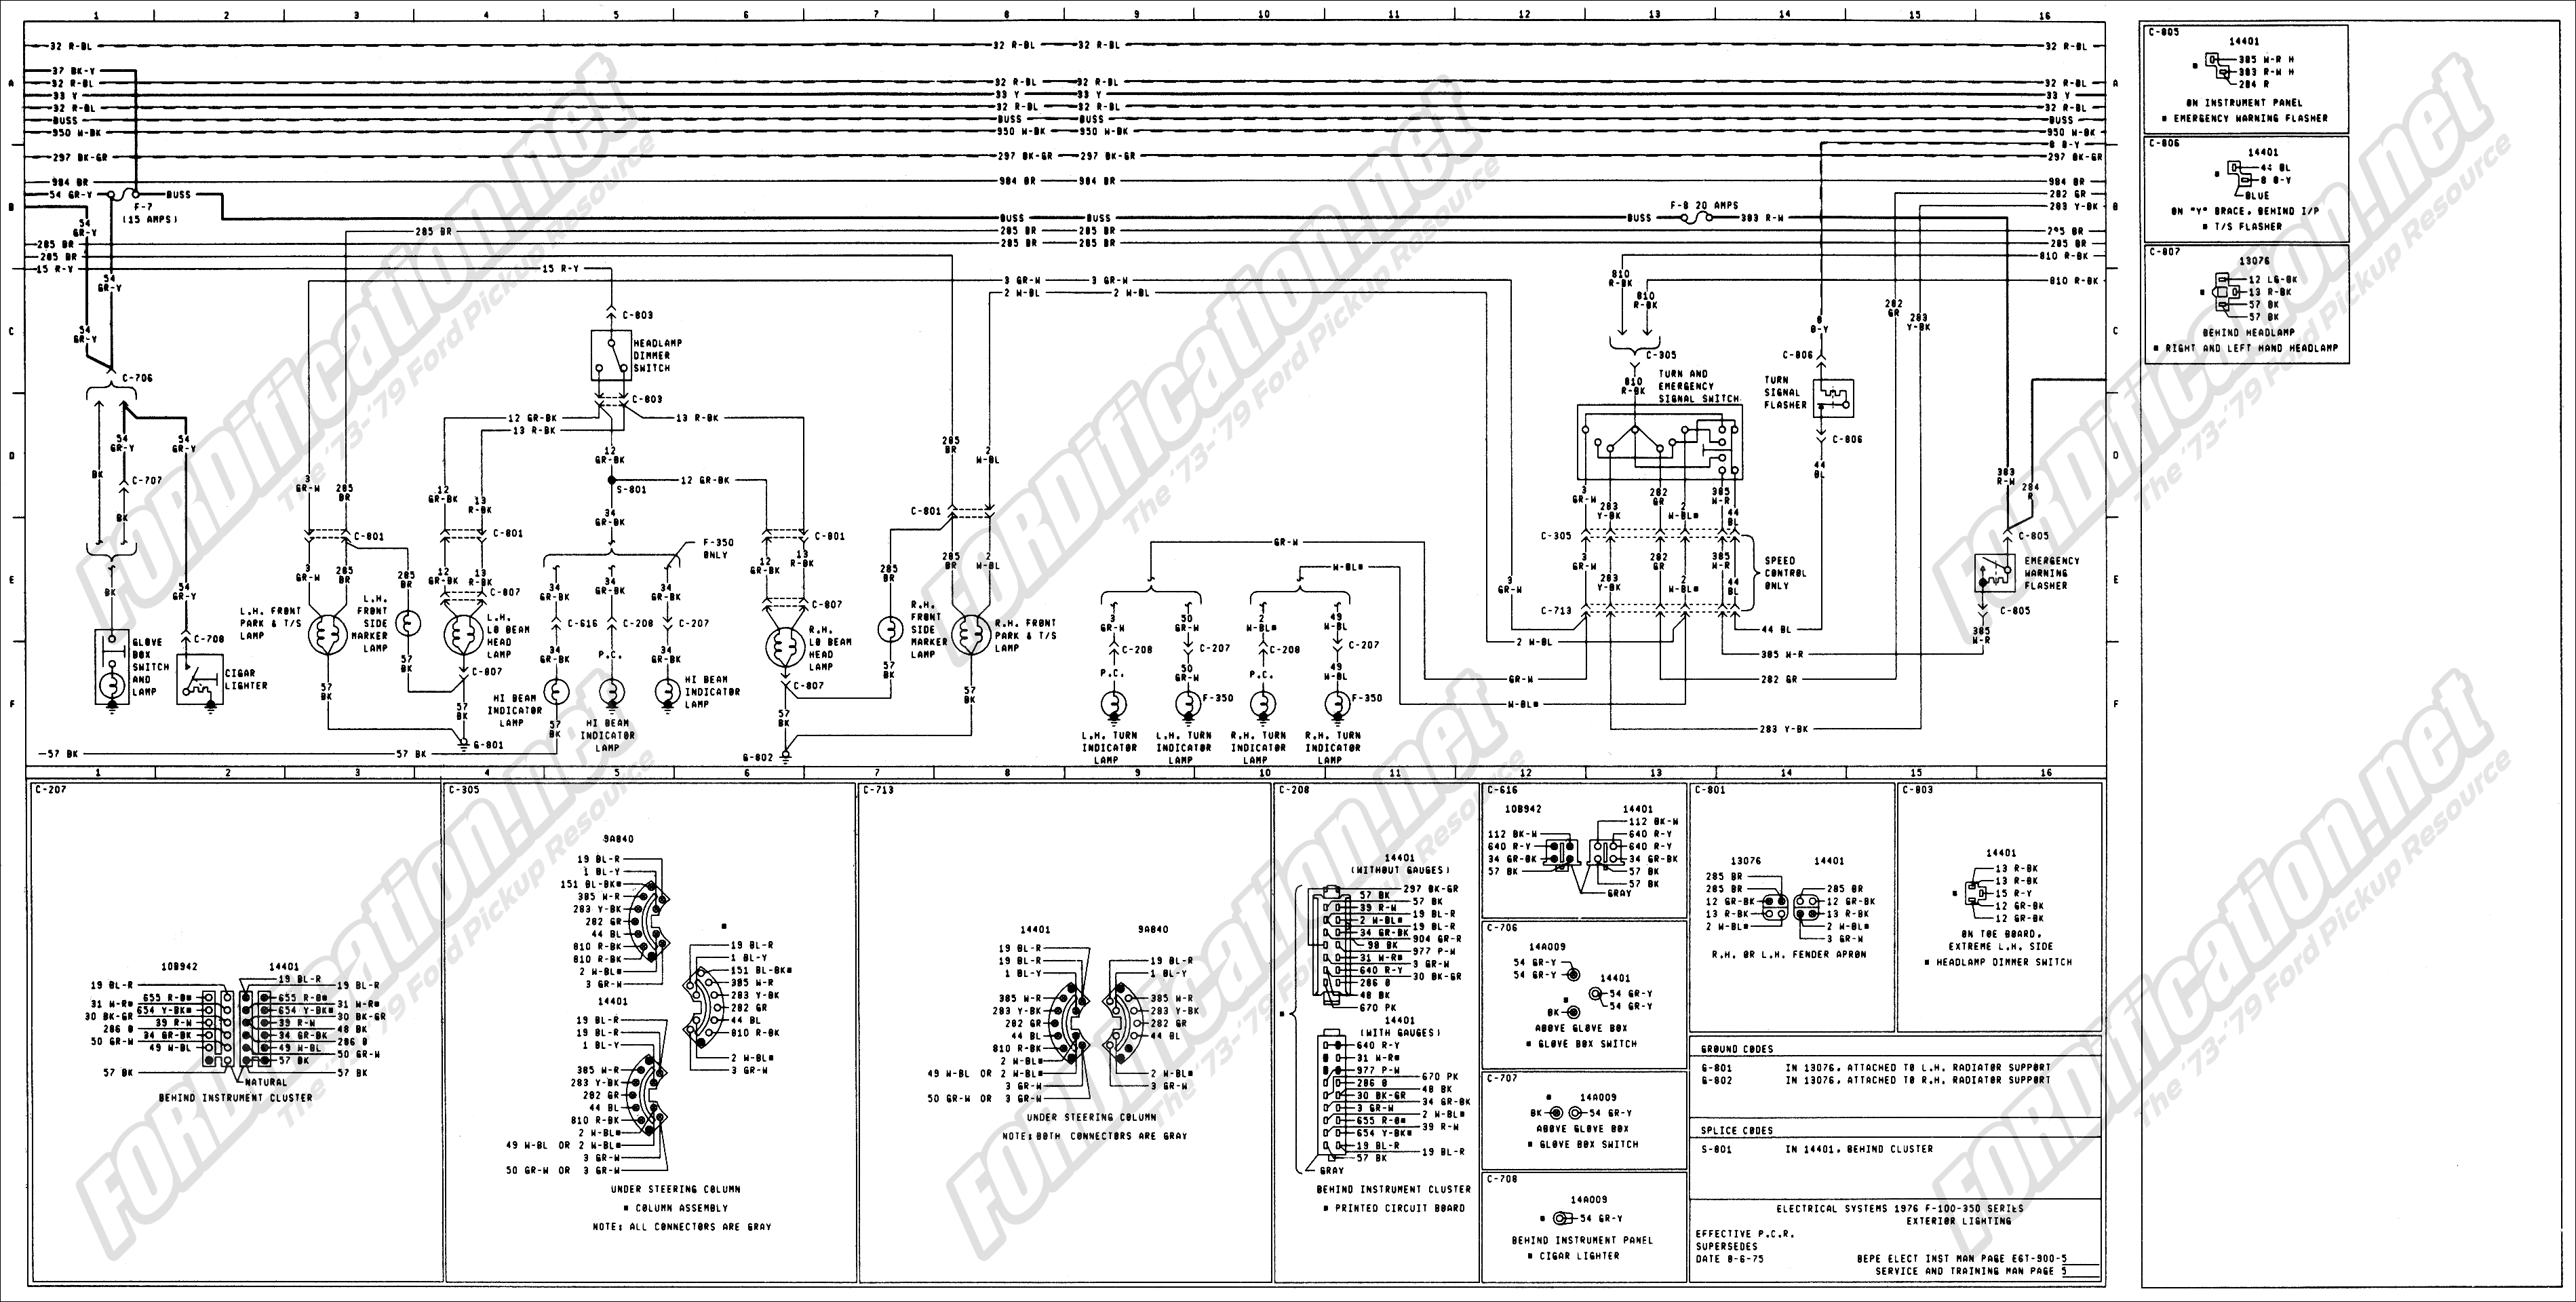 1973 1979 ford truck wiring diagrams schematics fordification net rh fordification net 1977 ford f150 alternator wiring diagram 1977 ford f150 wiring diagram